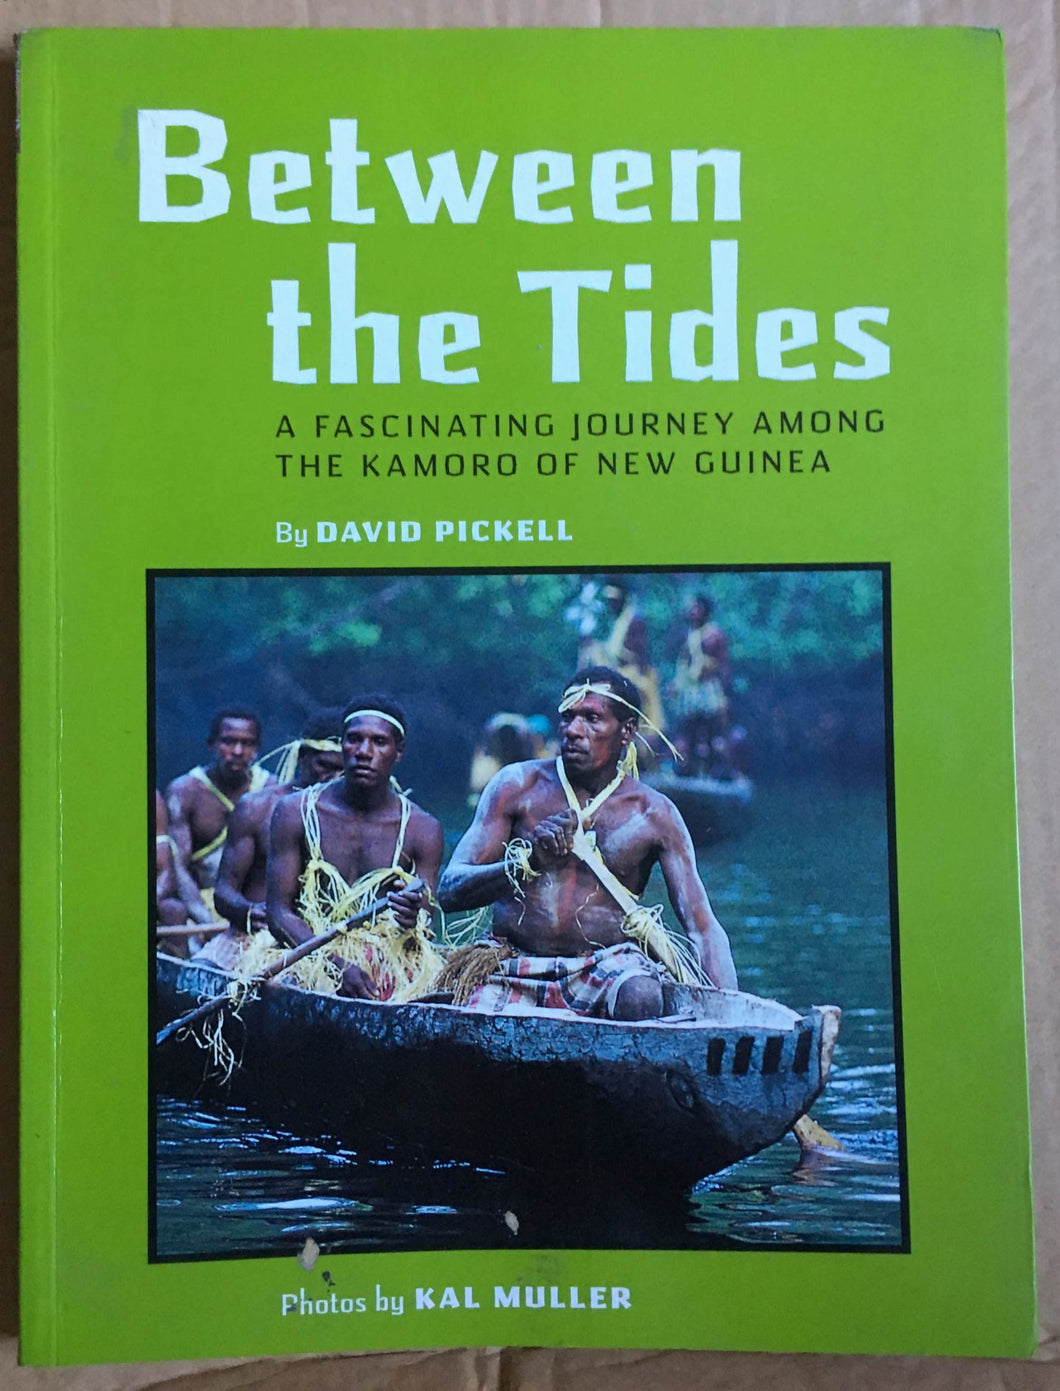 Book : Between the Tides - A fascinating journey among the Kamoro of New Guinea - David Pickell